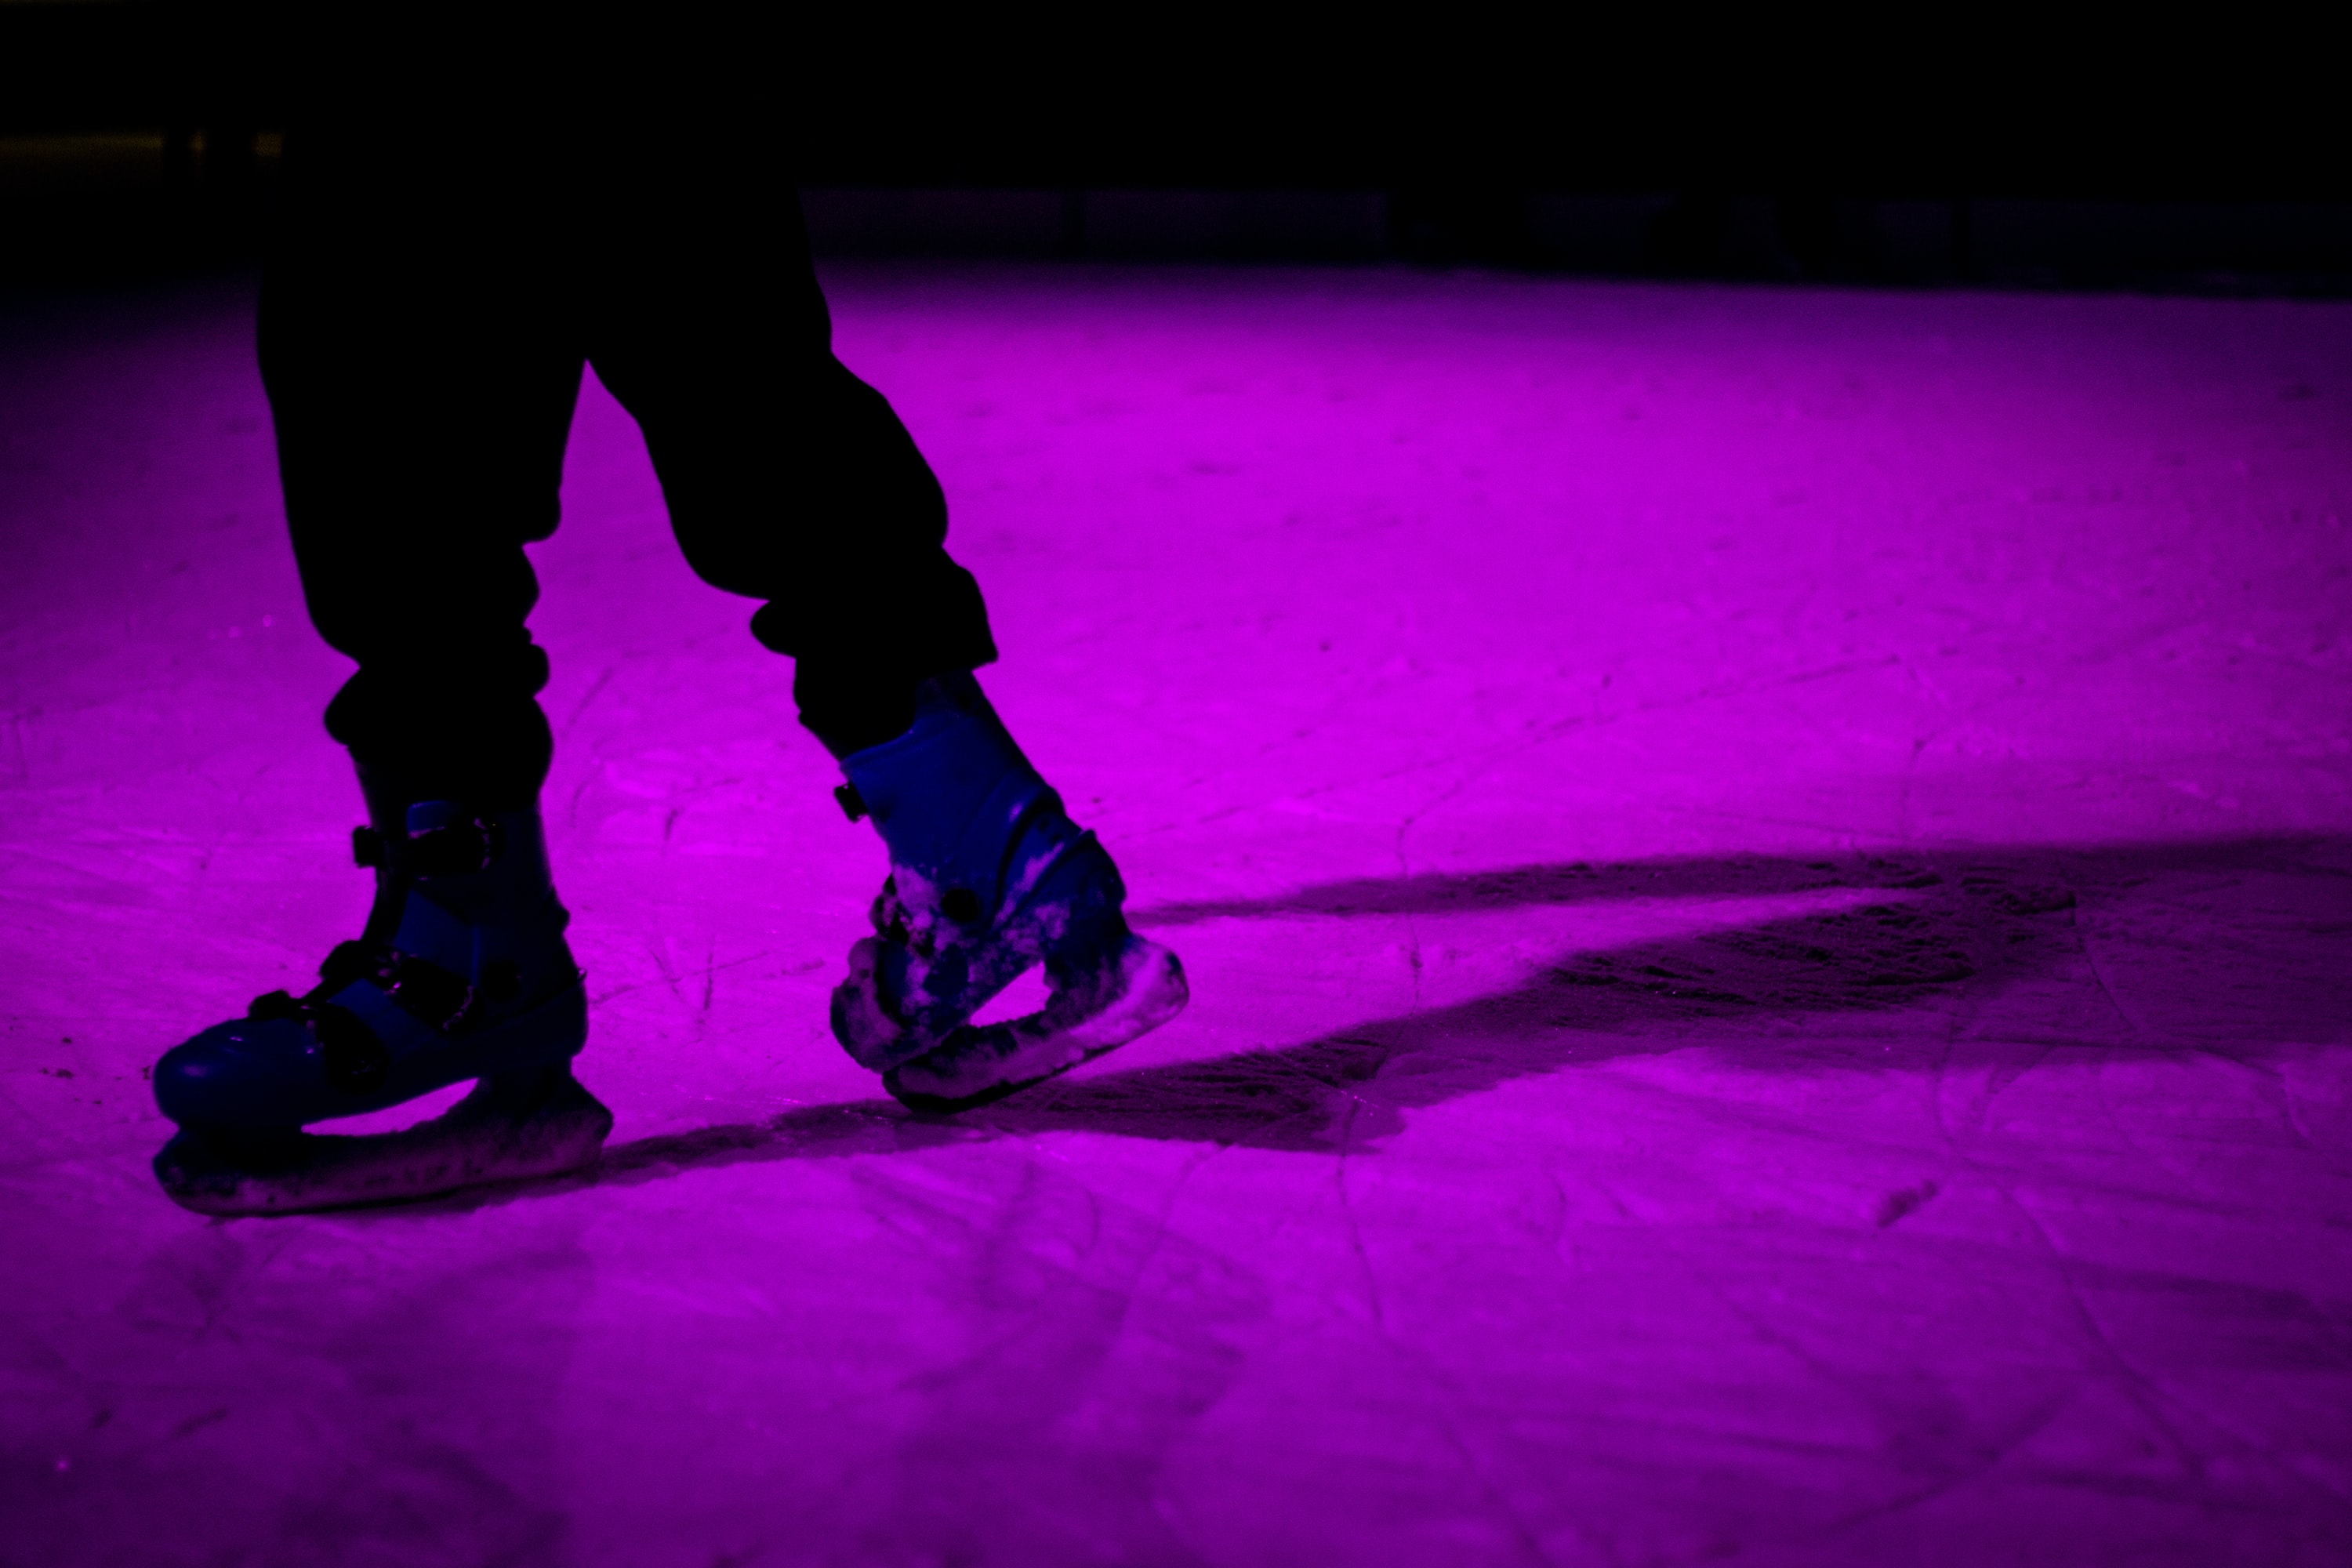 person wearing hockey skates